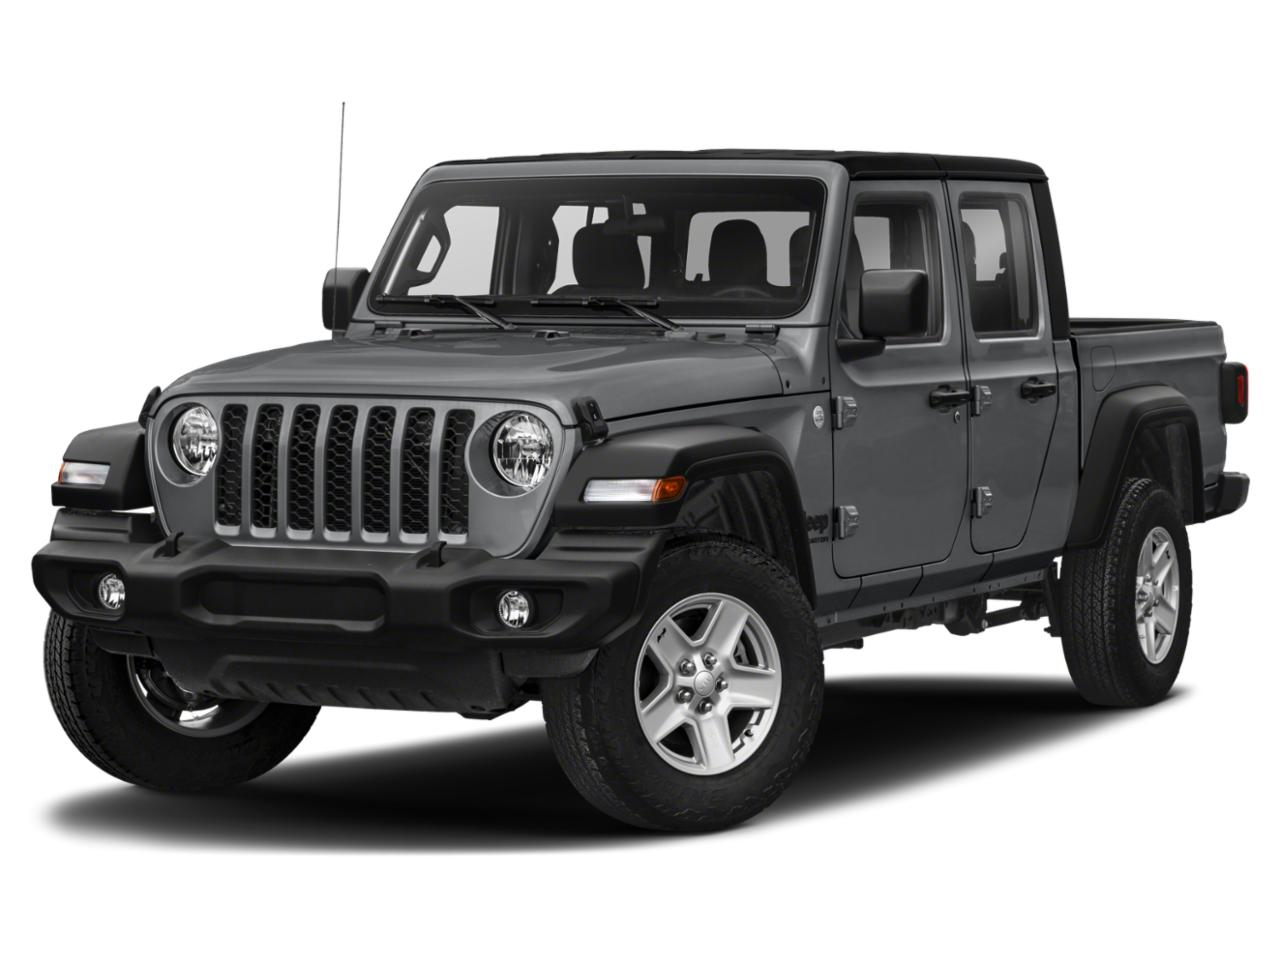 2020 Jeep Gladiator Vehicle Photo in Smyrna, GA 30080